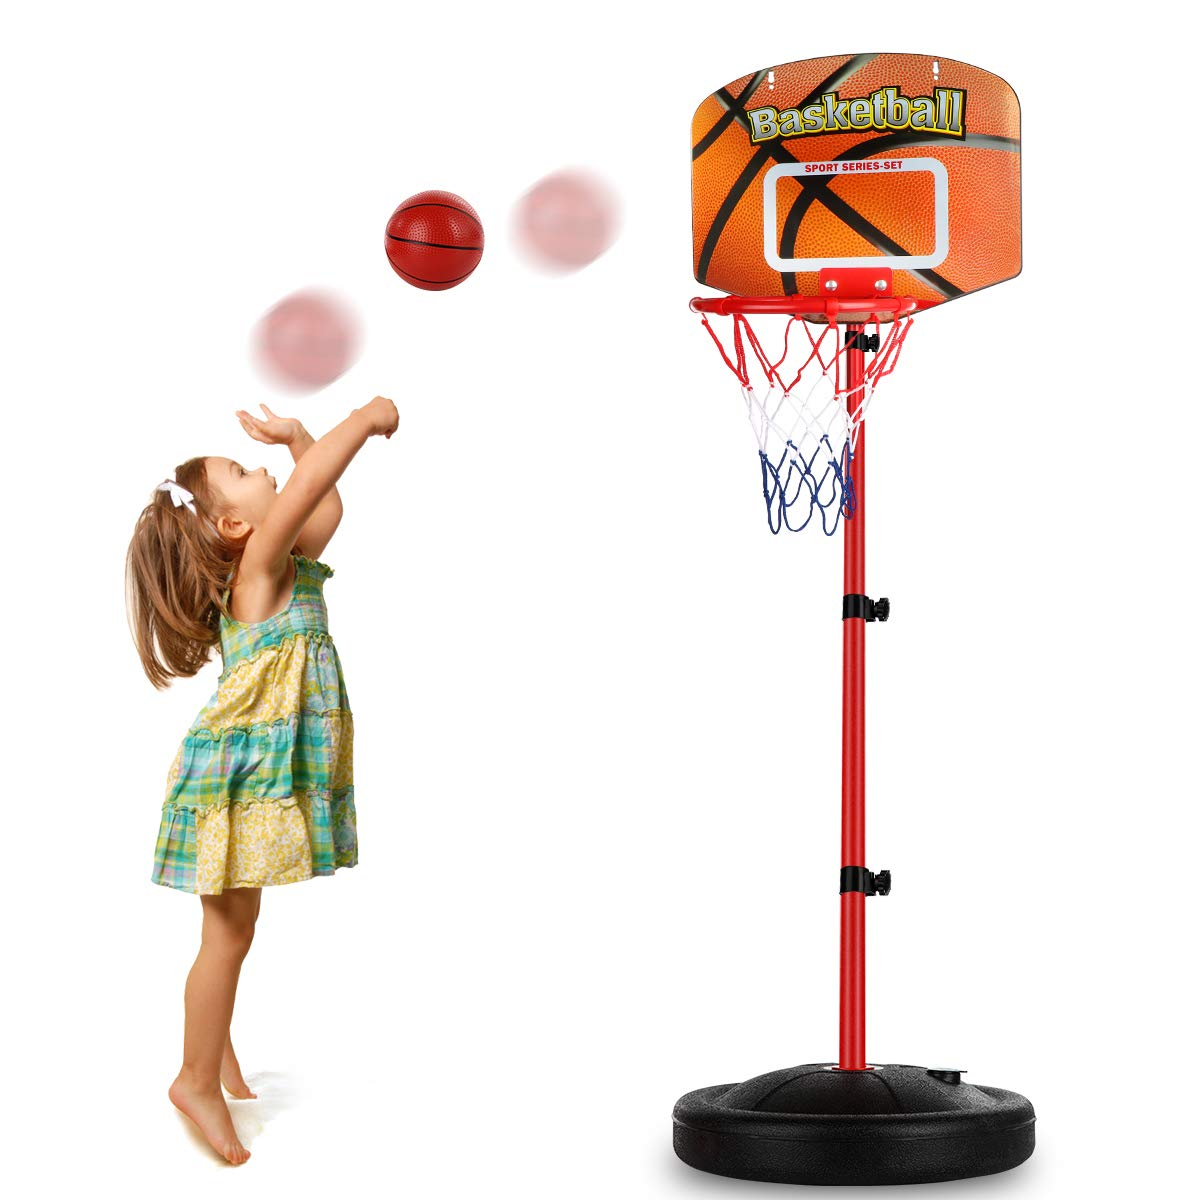 Toddler Basketball Hoop Stand Adjustable Height 2.5 ft -5.1 ft Mini Indoor Basketball Goal Toy with Ball Pump for Baby Kids Boys Girls Outdoor Play Sport Age 2 3 4 5 6 Years Old by Auggie